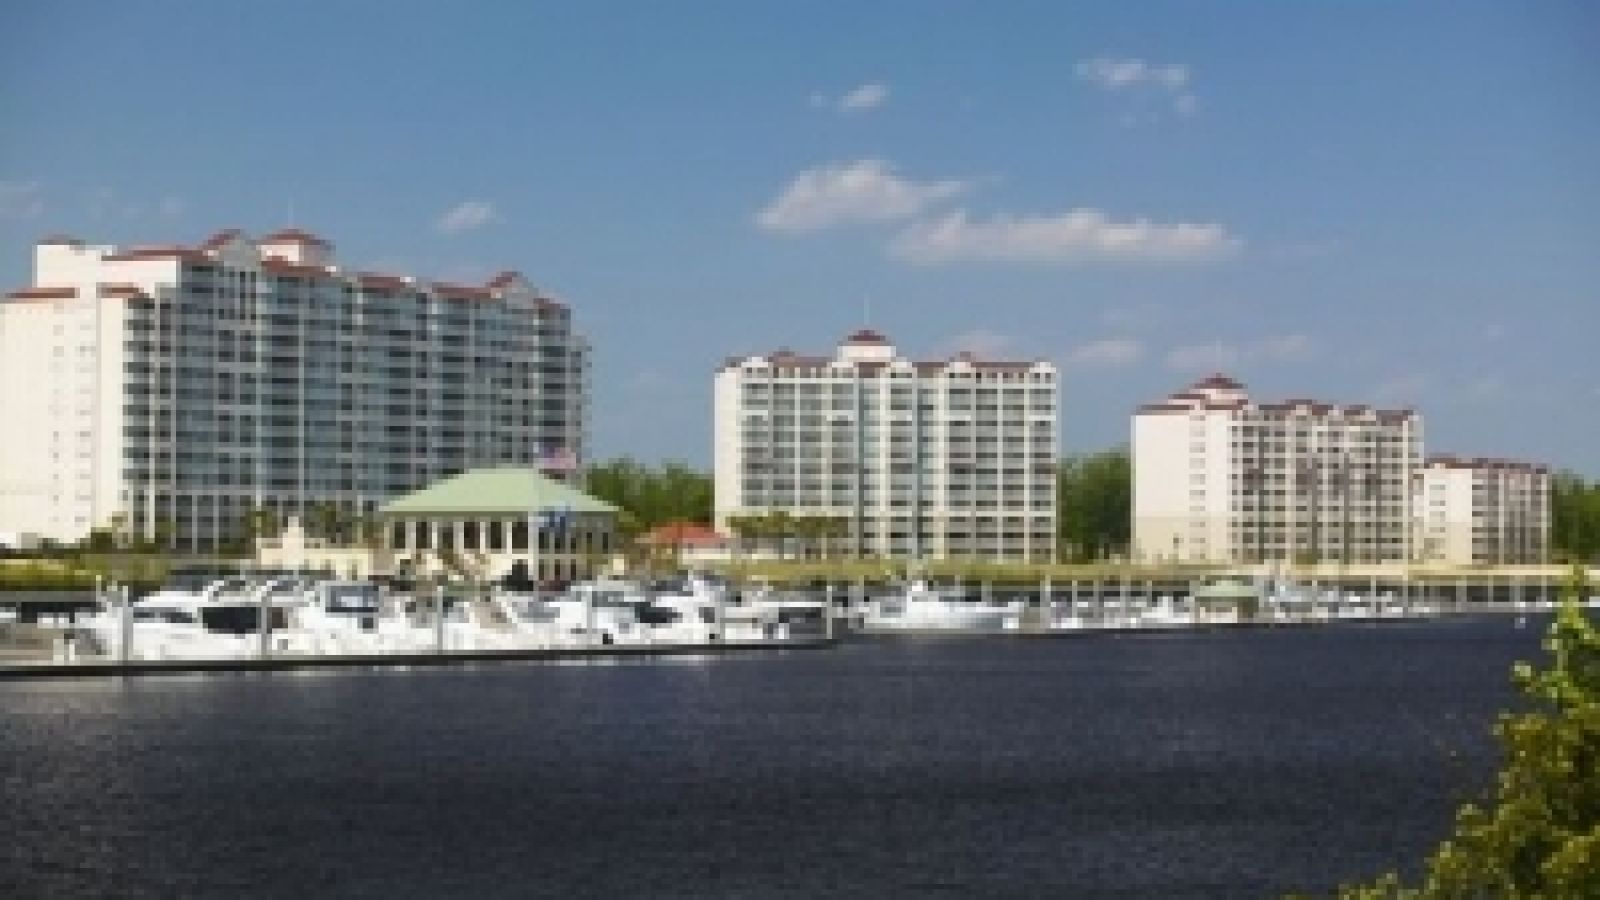 Barefoot Resort and Golf - Myrtle Beach golf packages